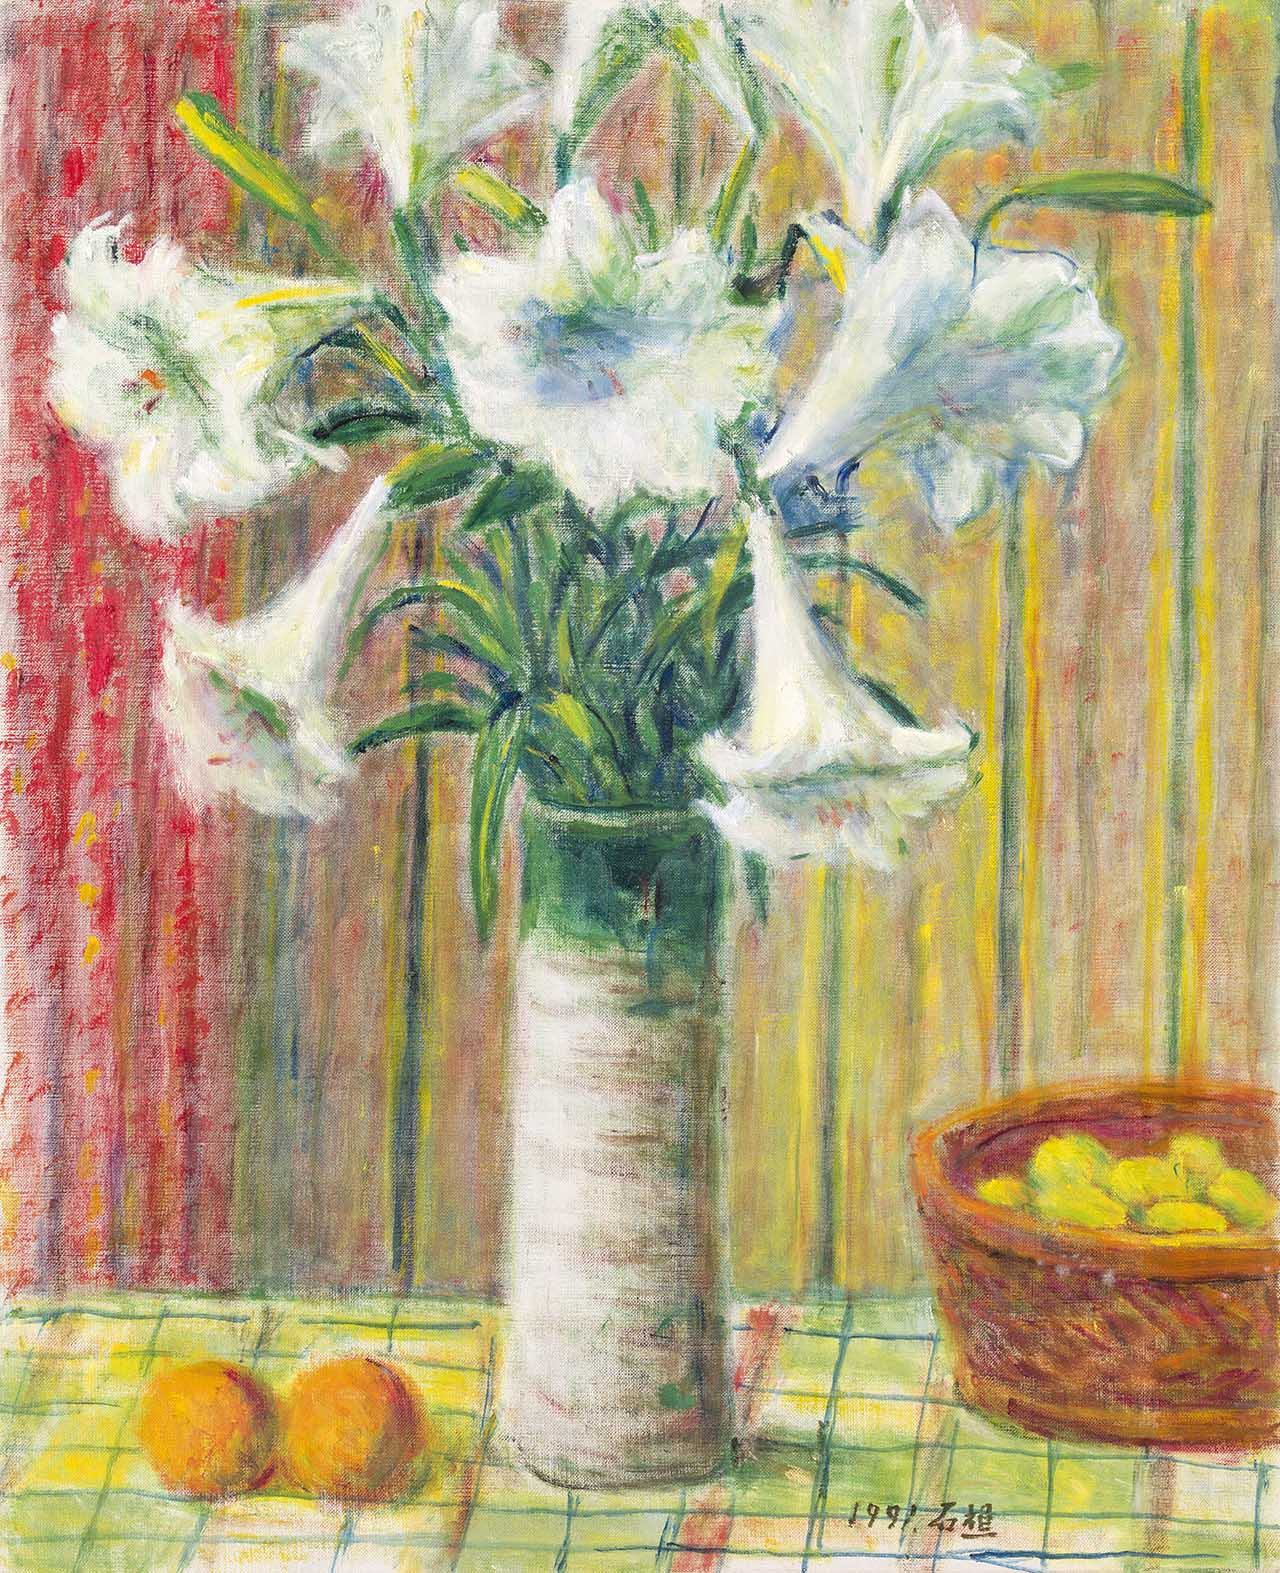 Vase of Lily Oil on canvas 12F